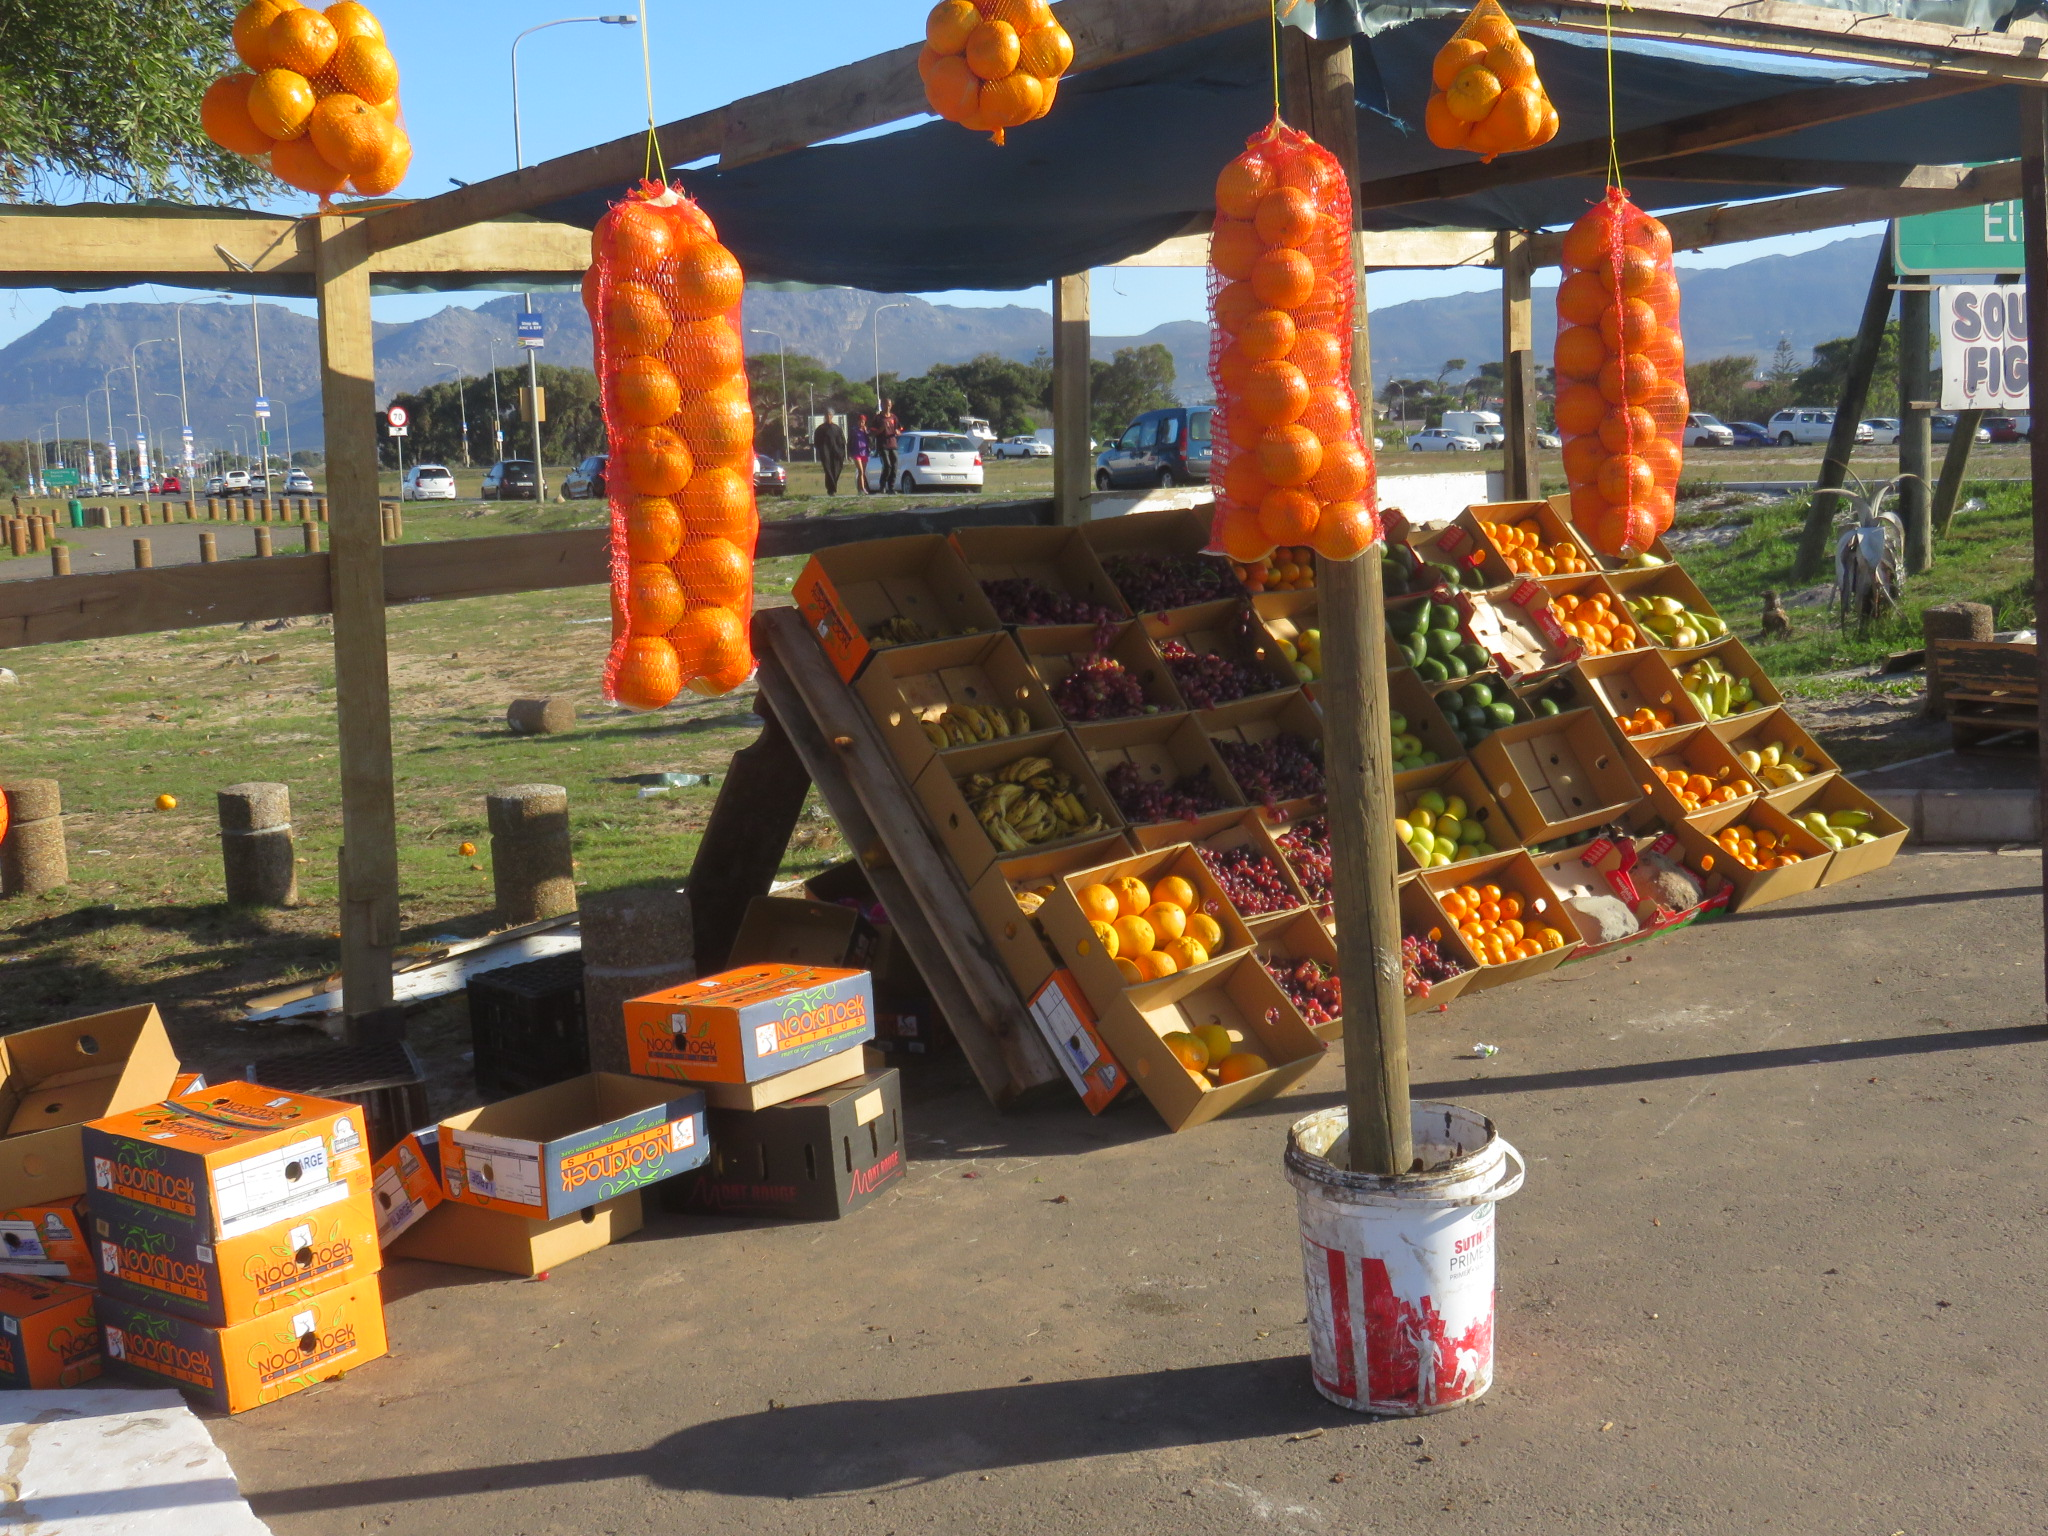 A fruit stall on the M5 near Grassy Park in Cape Town. On the right edge of the picture you can see the words 'Sour figs' above a massive pyramid of the dried fruit.